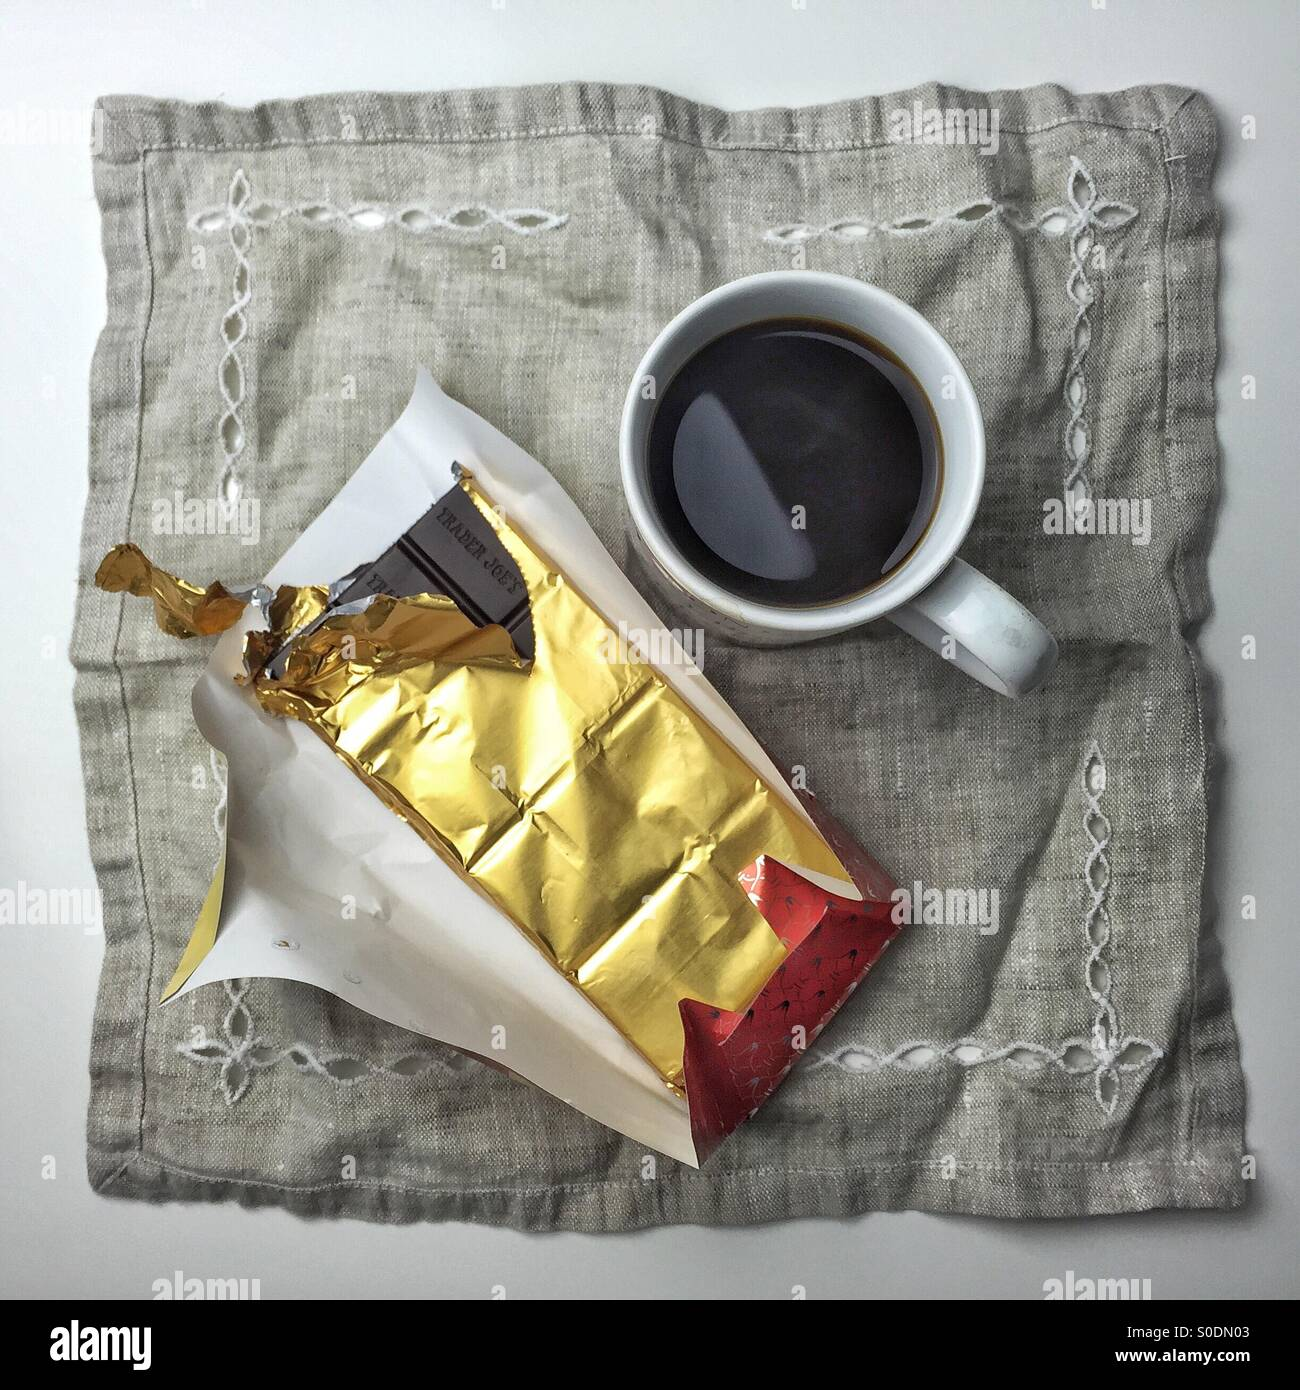 Coffee and chocolate - Stock Image